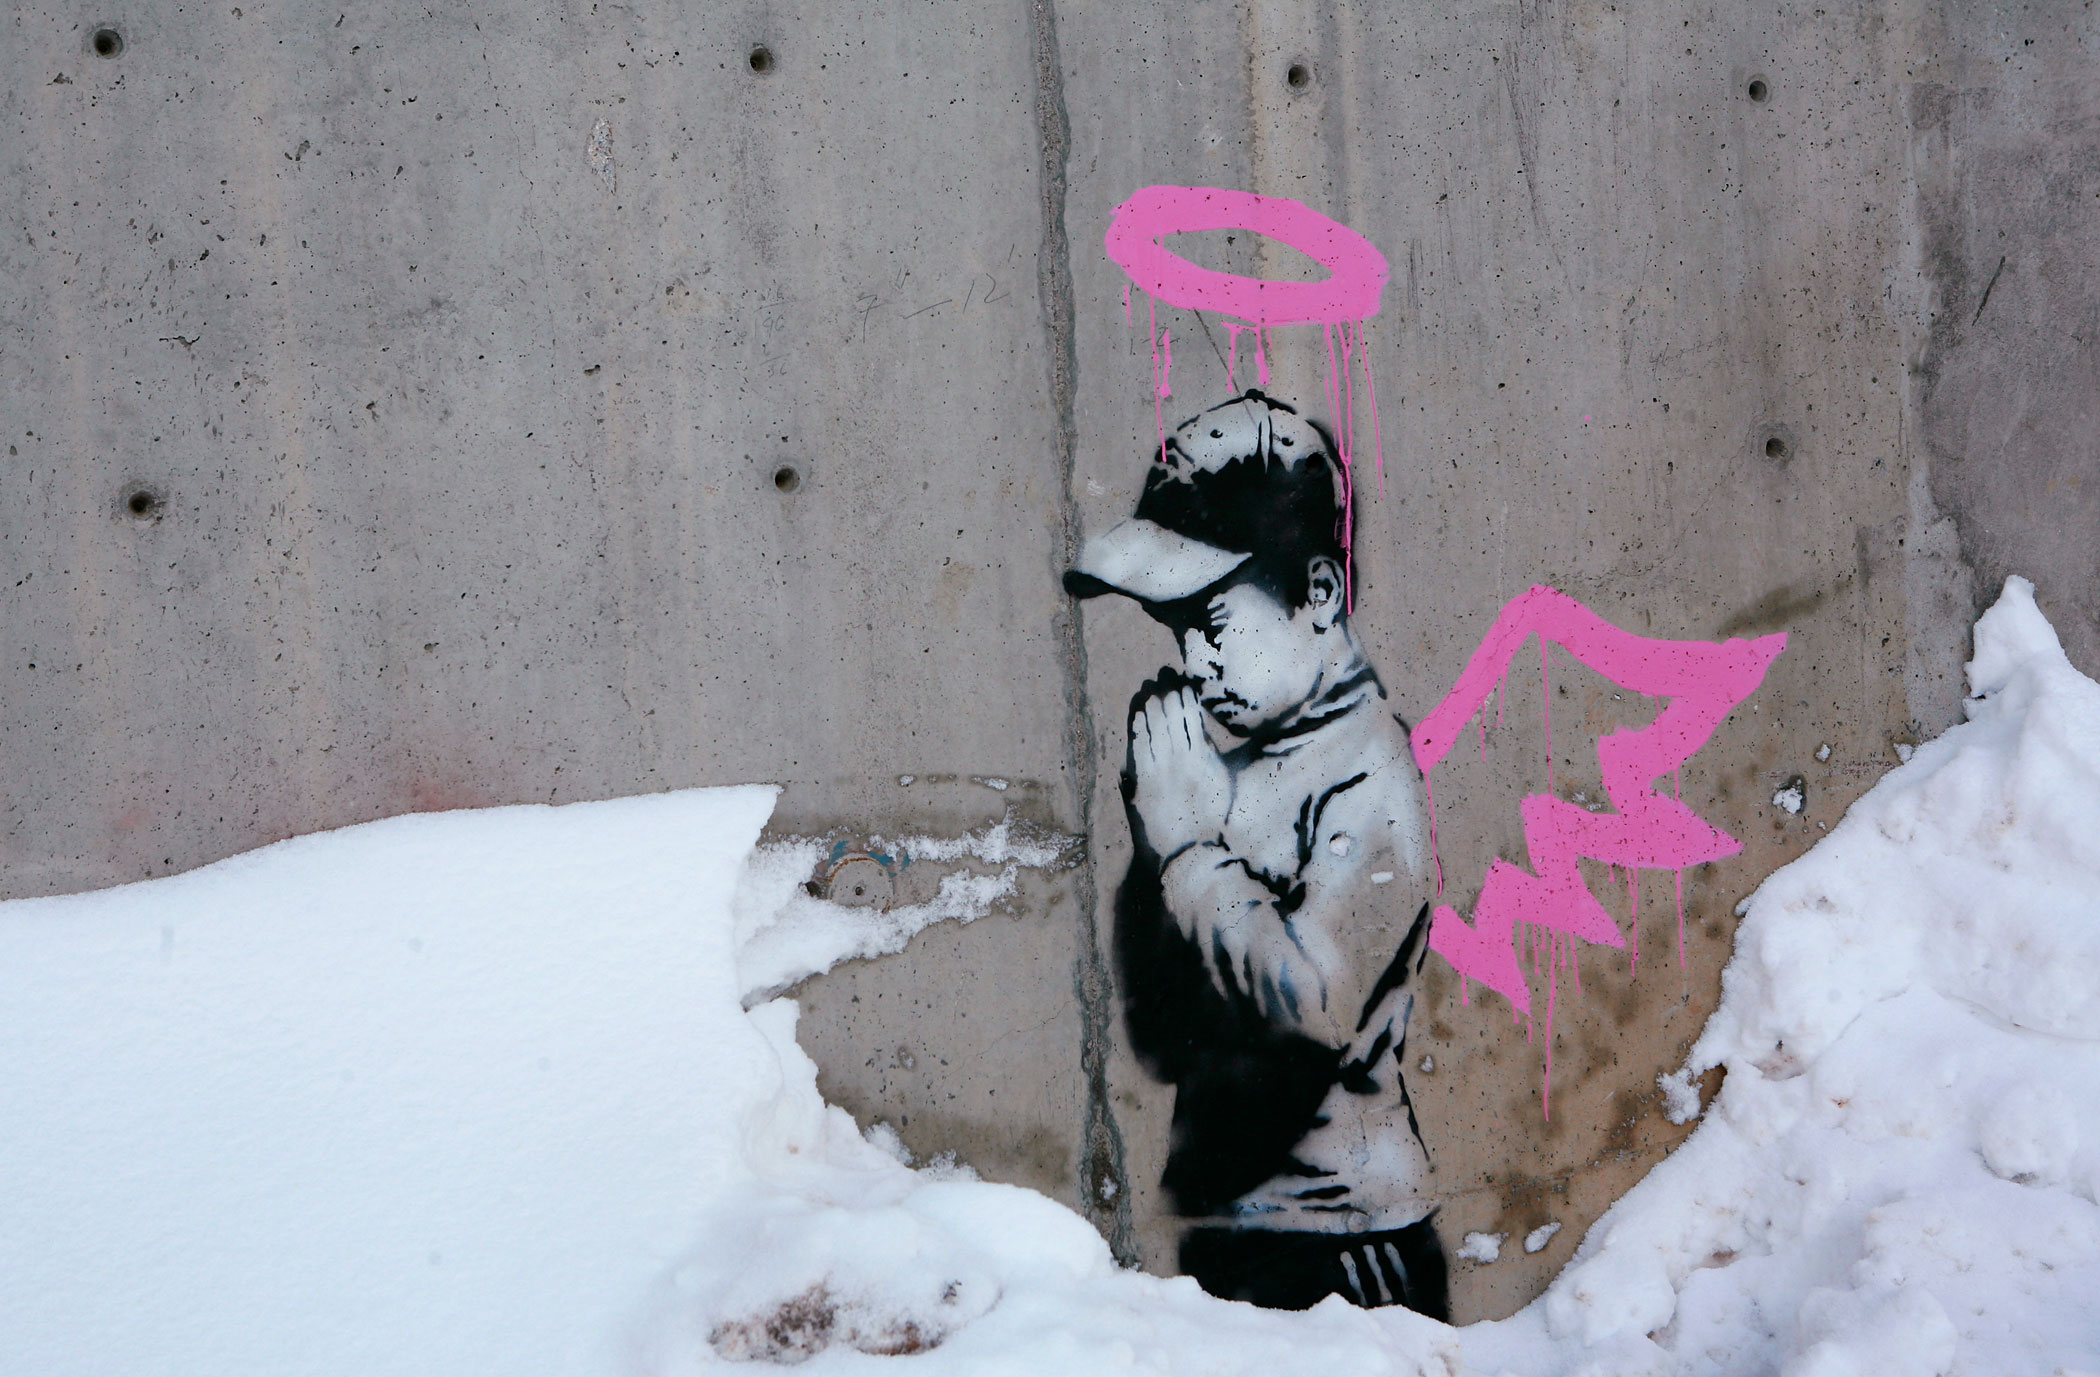 Artwork by Banksy is seen on a wall during the Sundance Film Festival in Park City, Utah, January 22, 2010.